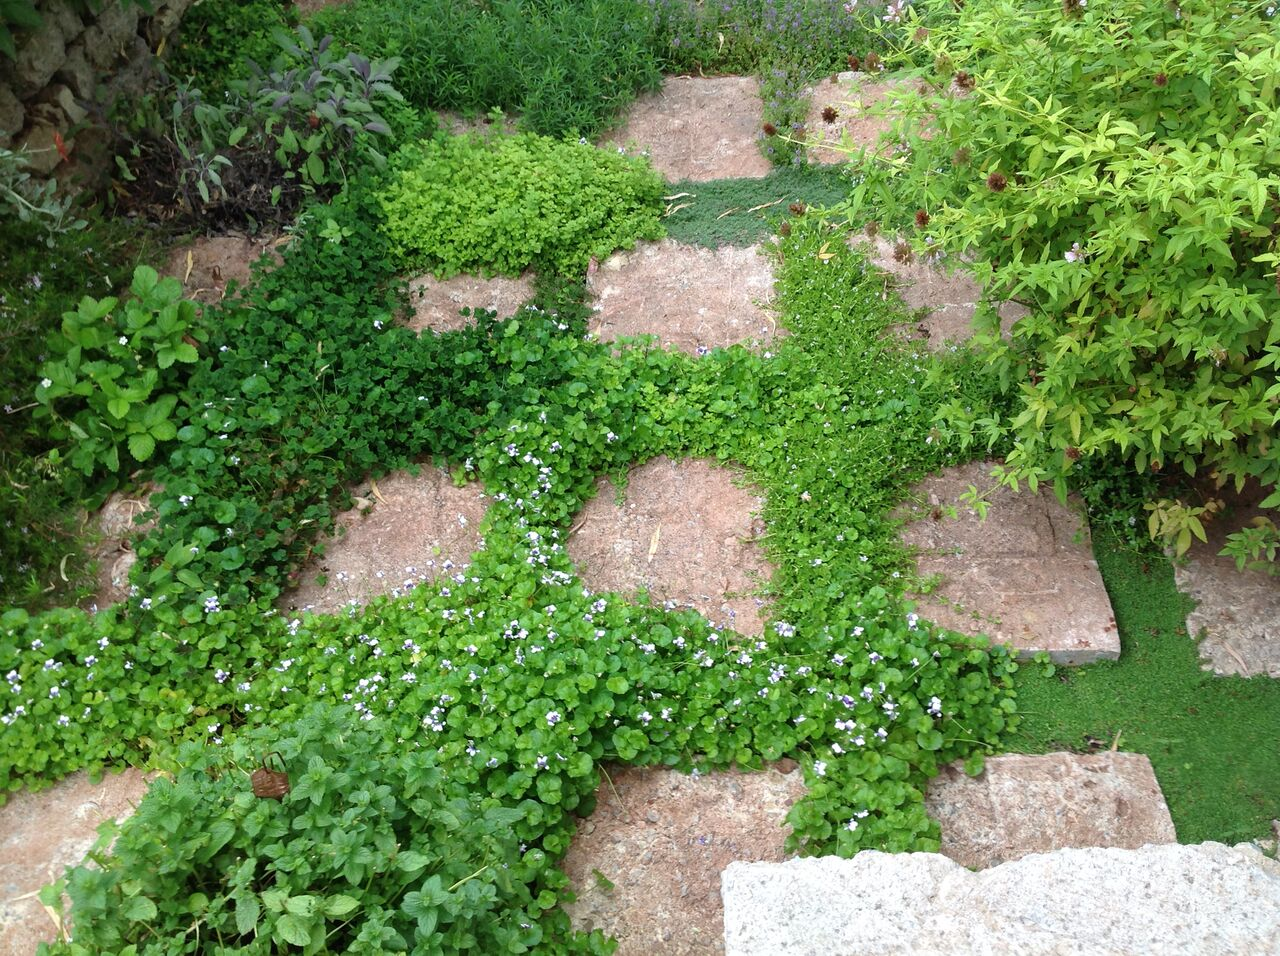 Ground Covers At Evette Sunset Garden